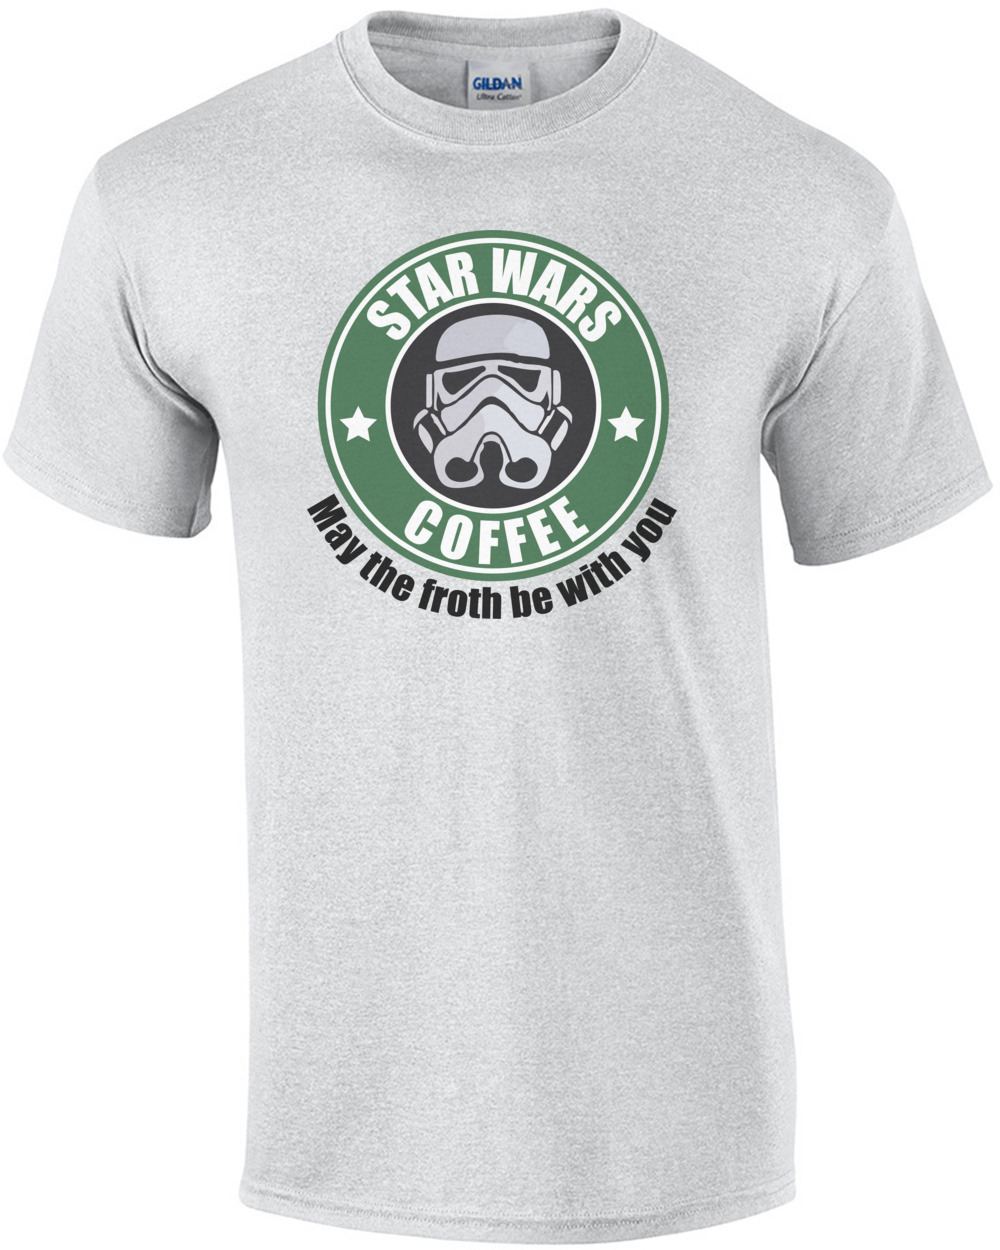 The Froth Be With You Star Wars T Shirt